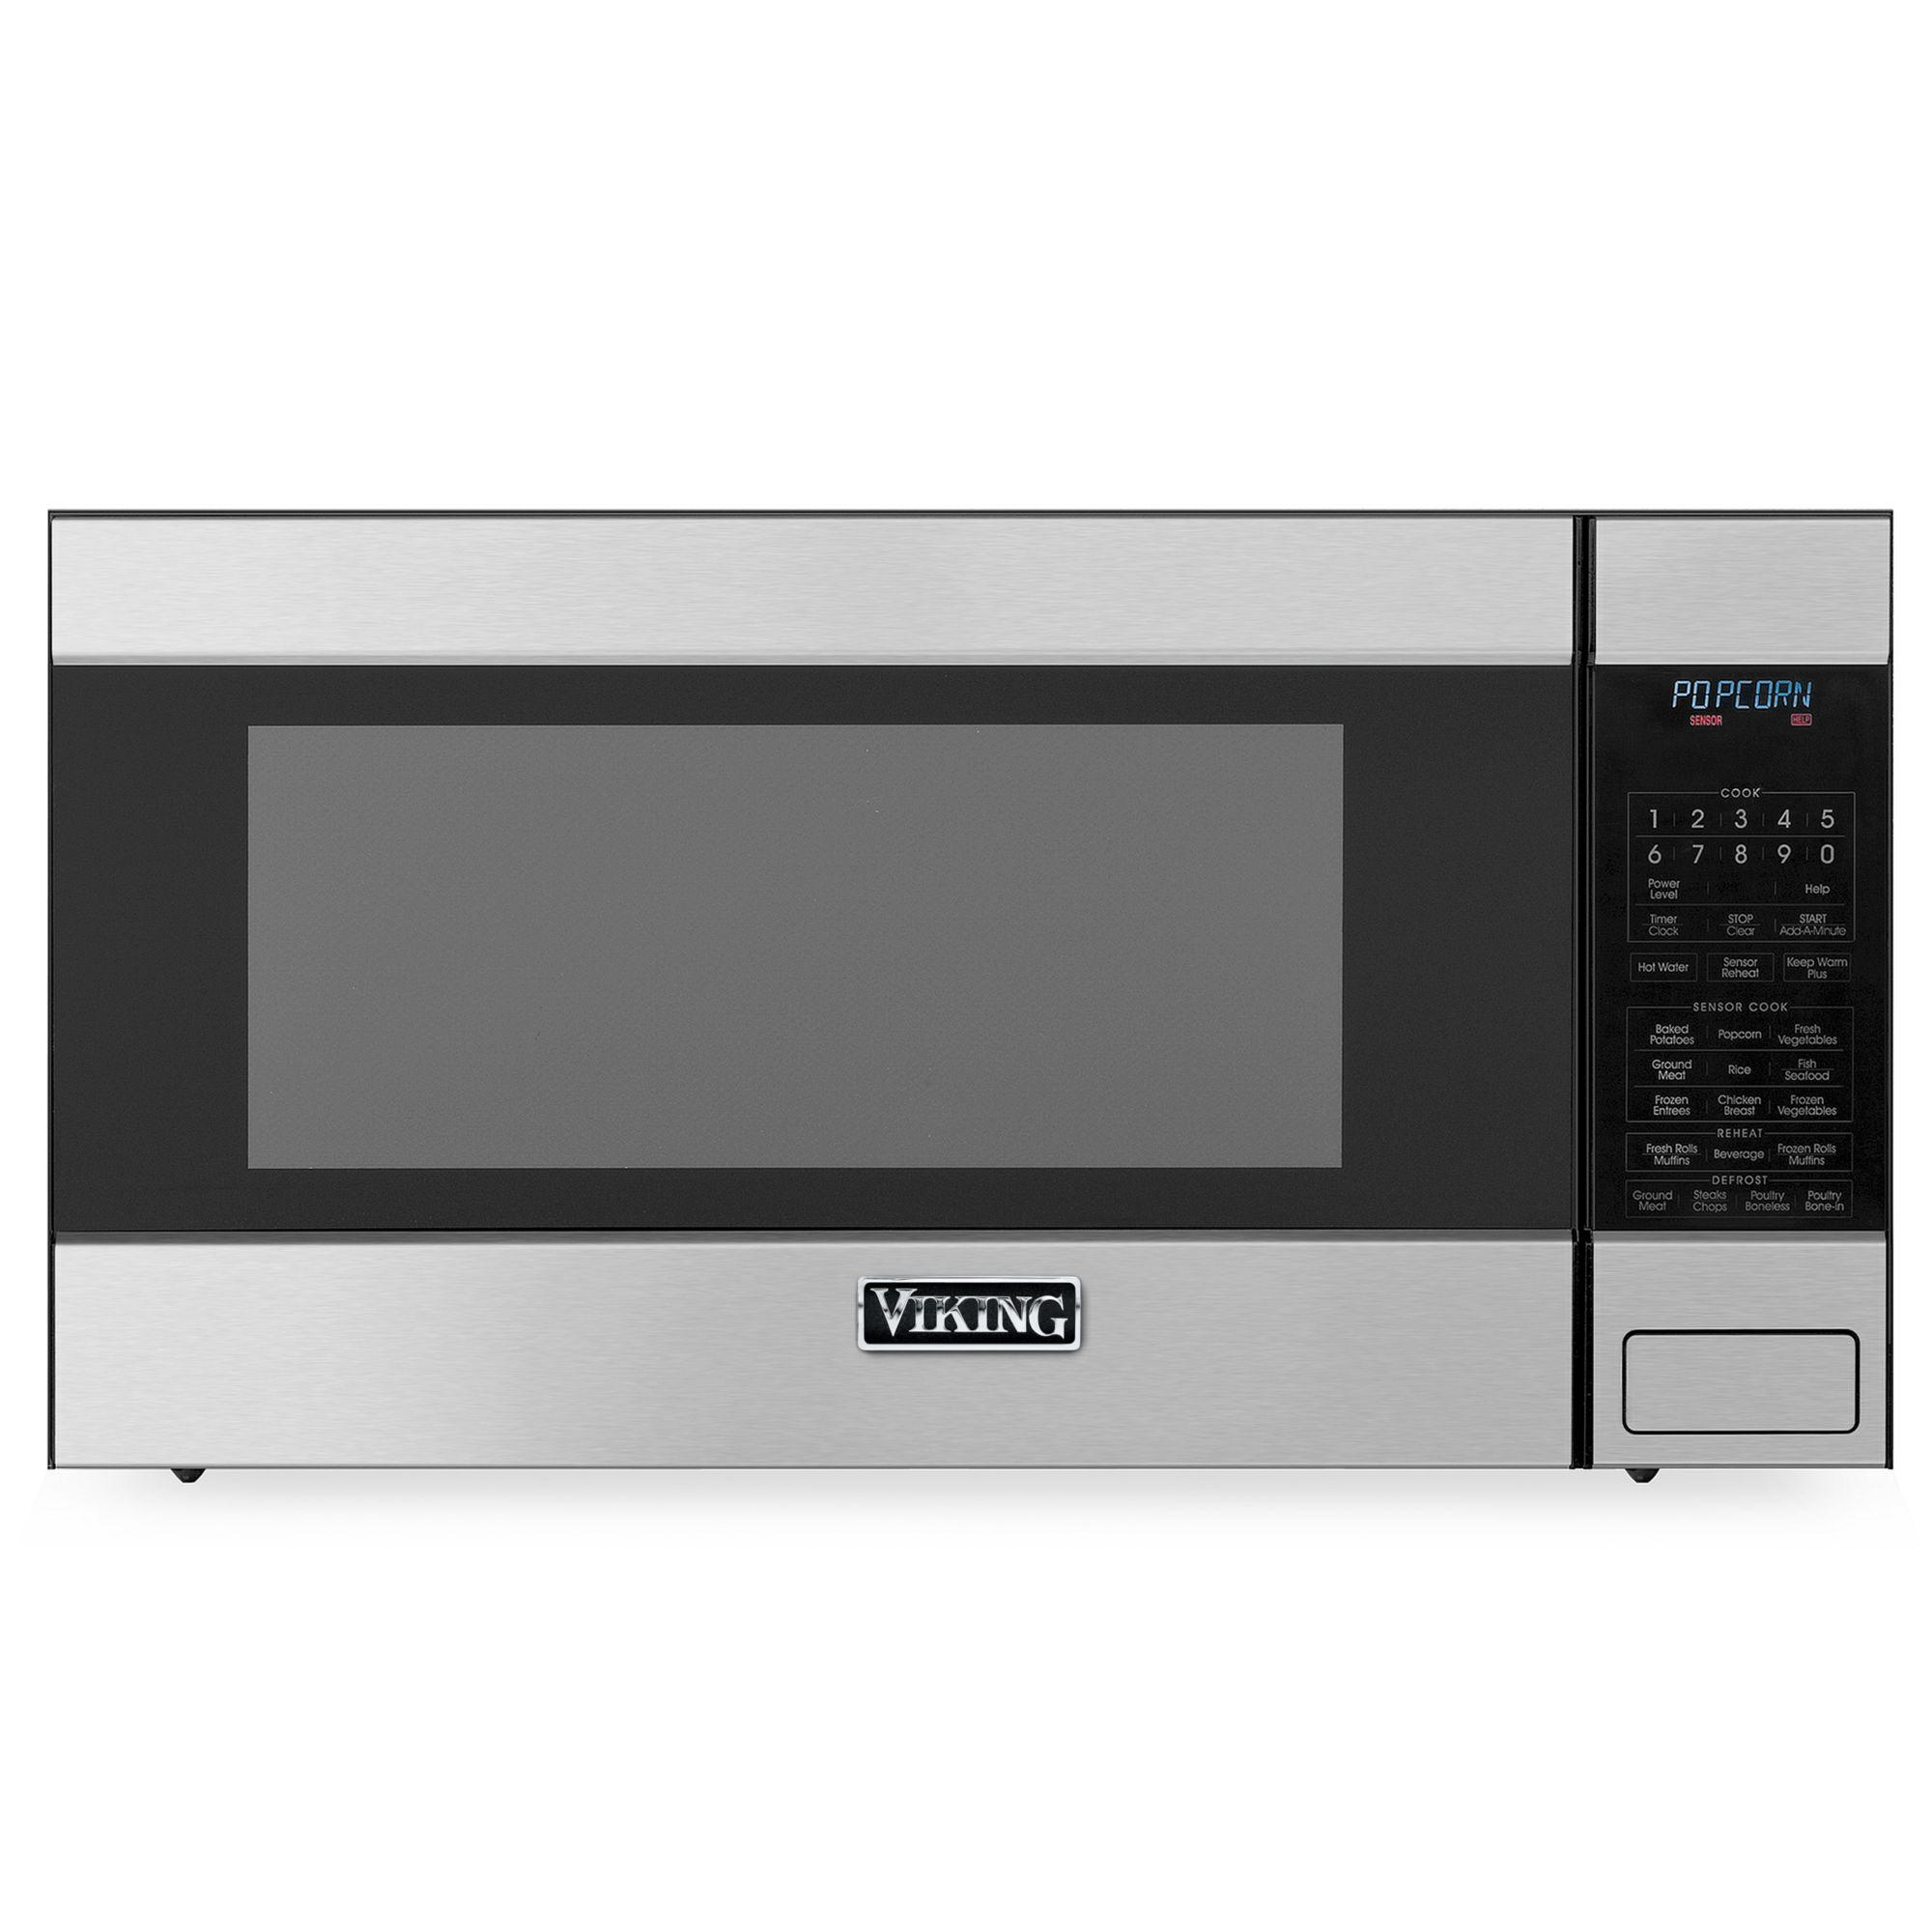 ... Viking, Model: RVM320SS, Style: 2.0 cu. ft. Countertop Microwave Oven